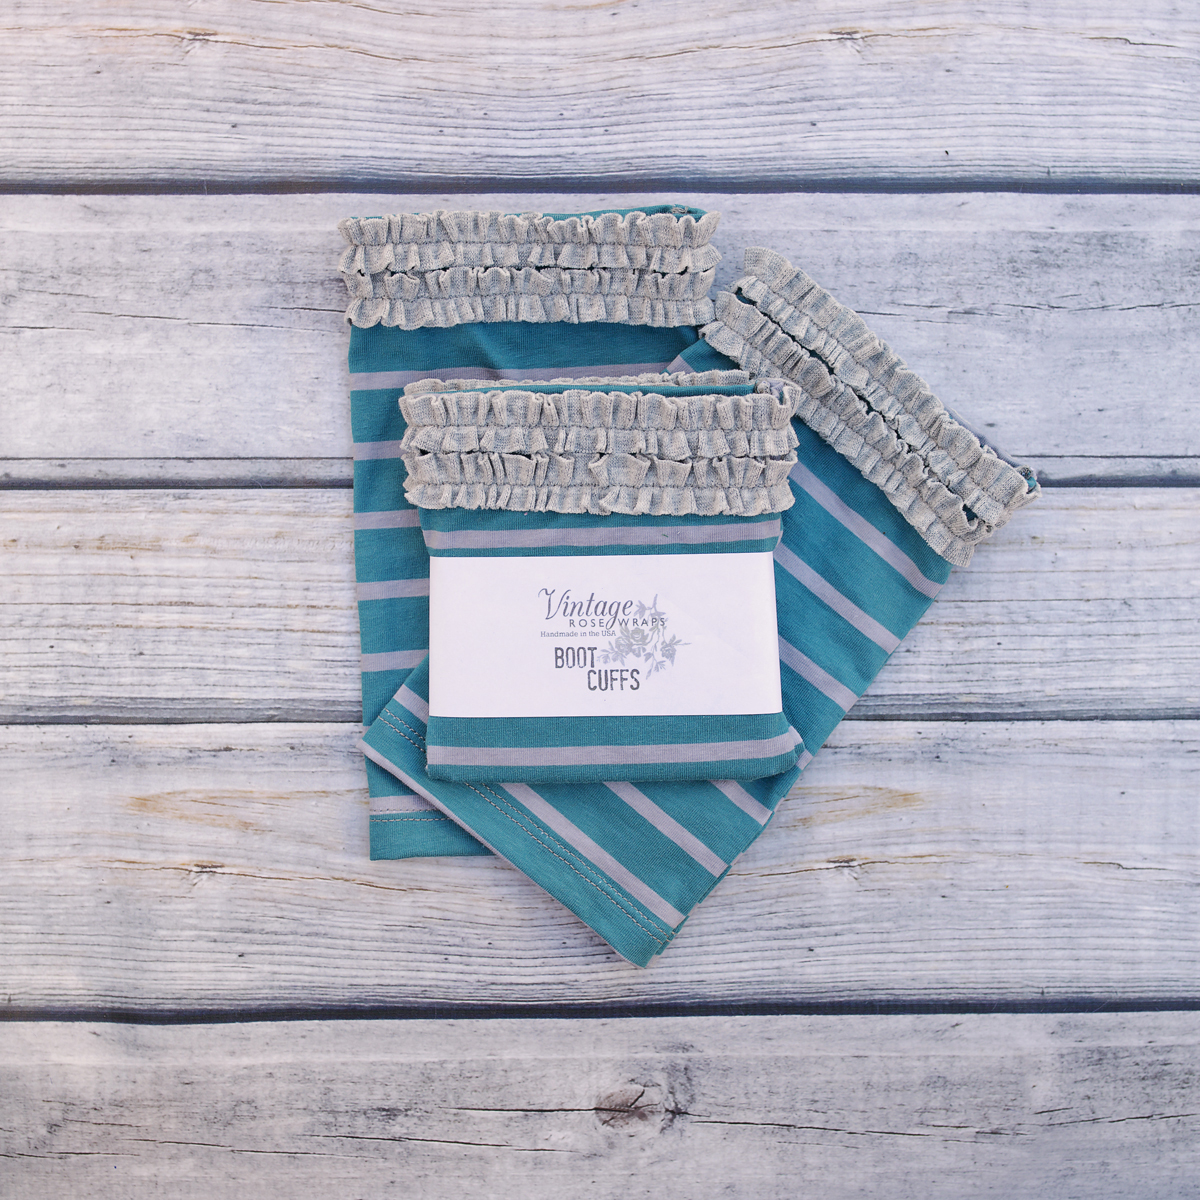 TEAL WITH GRAY BOOT CUFFS $20